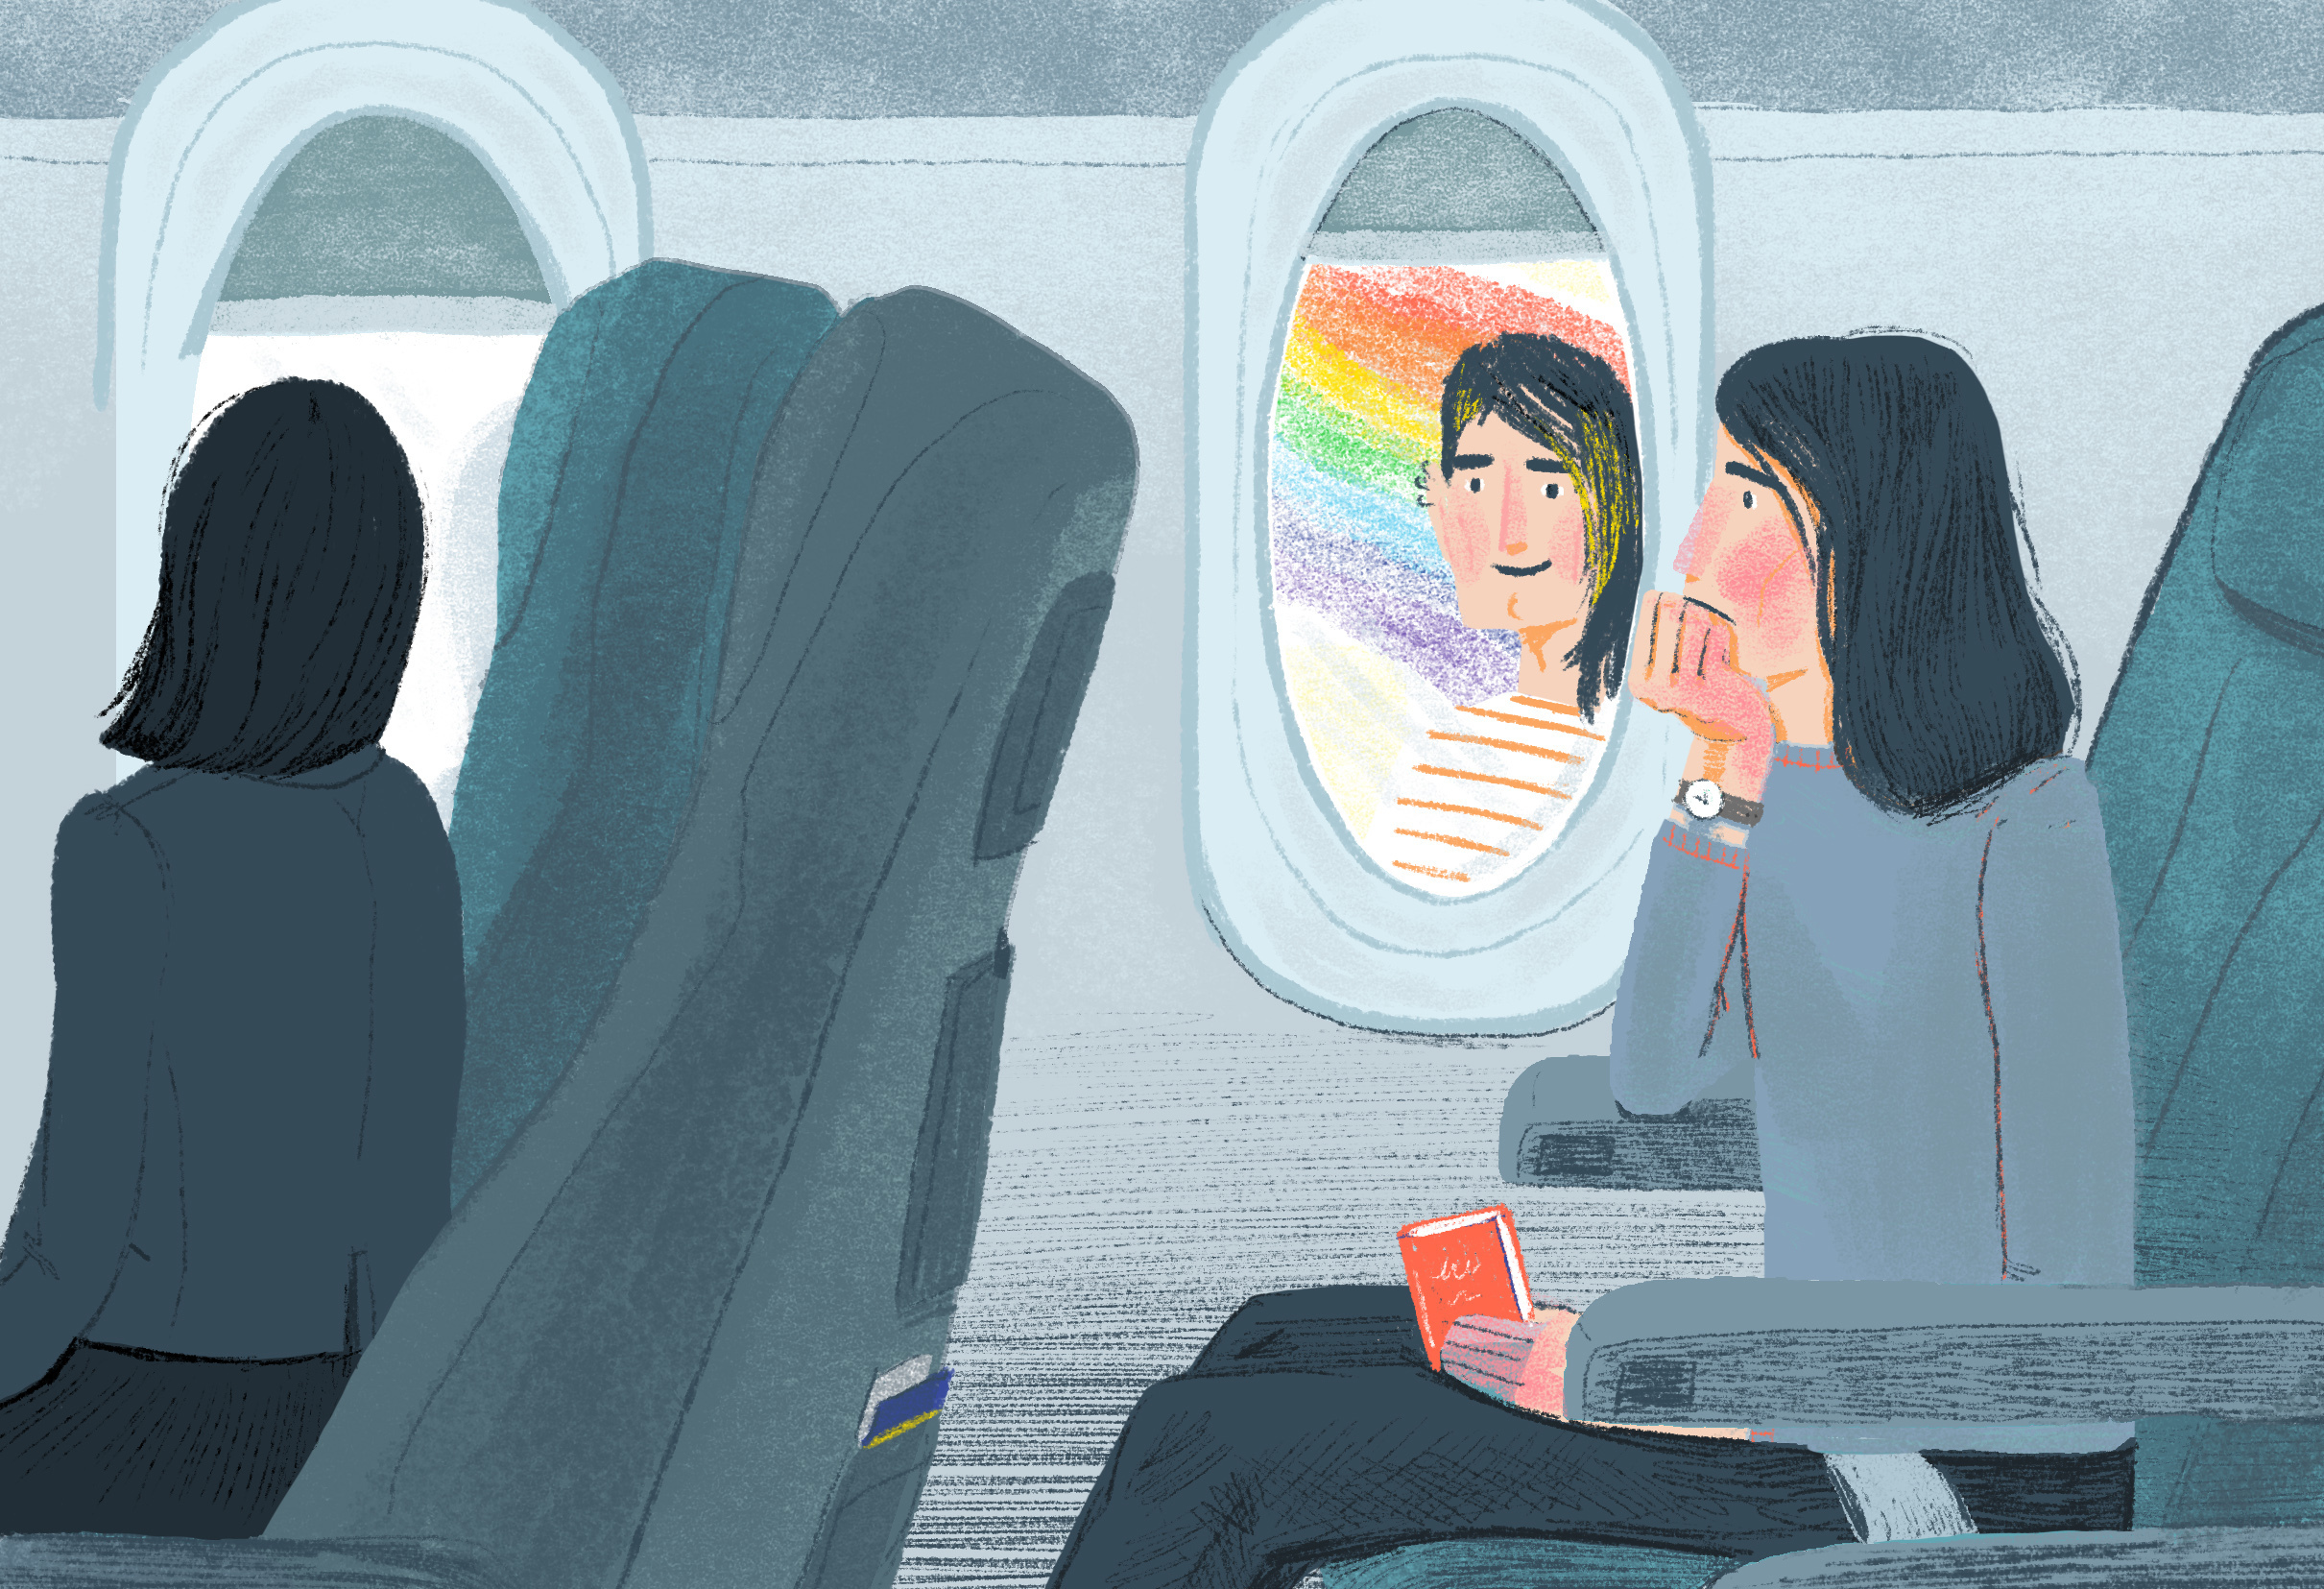 Know An LGBTQ Student Itching To Study Abroad? Here Are Some Things To Think About